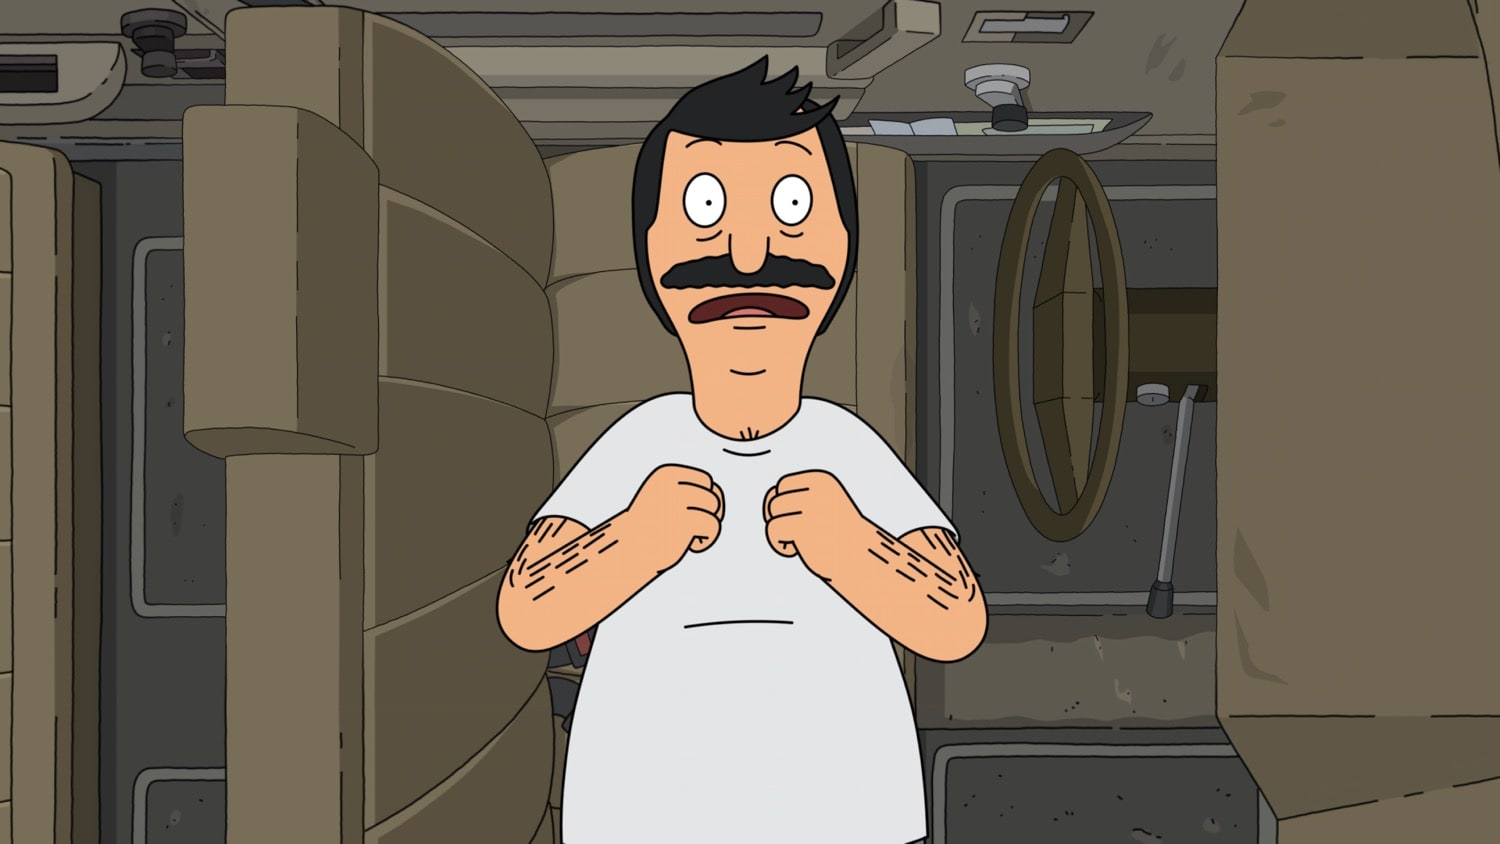 "BOB'S BURGERS: Bob goes on an epic quest to find a misplaced lock box key in the ""Dream A Little Bob of Bob"" season premiere episode of BOB'S BURGERS airing Sunday, Sept. 27 (9:00-9:30 PM ET/PT) on FOX. BOB'S BURGERS © 2020 by Twentieth Century Fox Film Corporation."